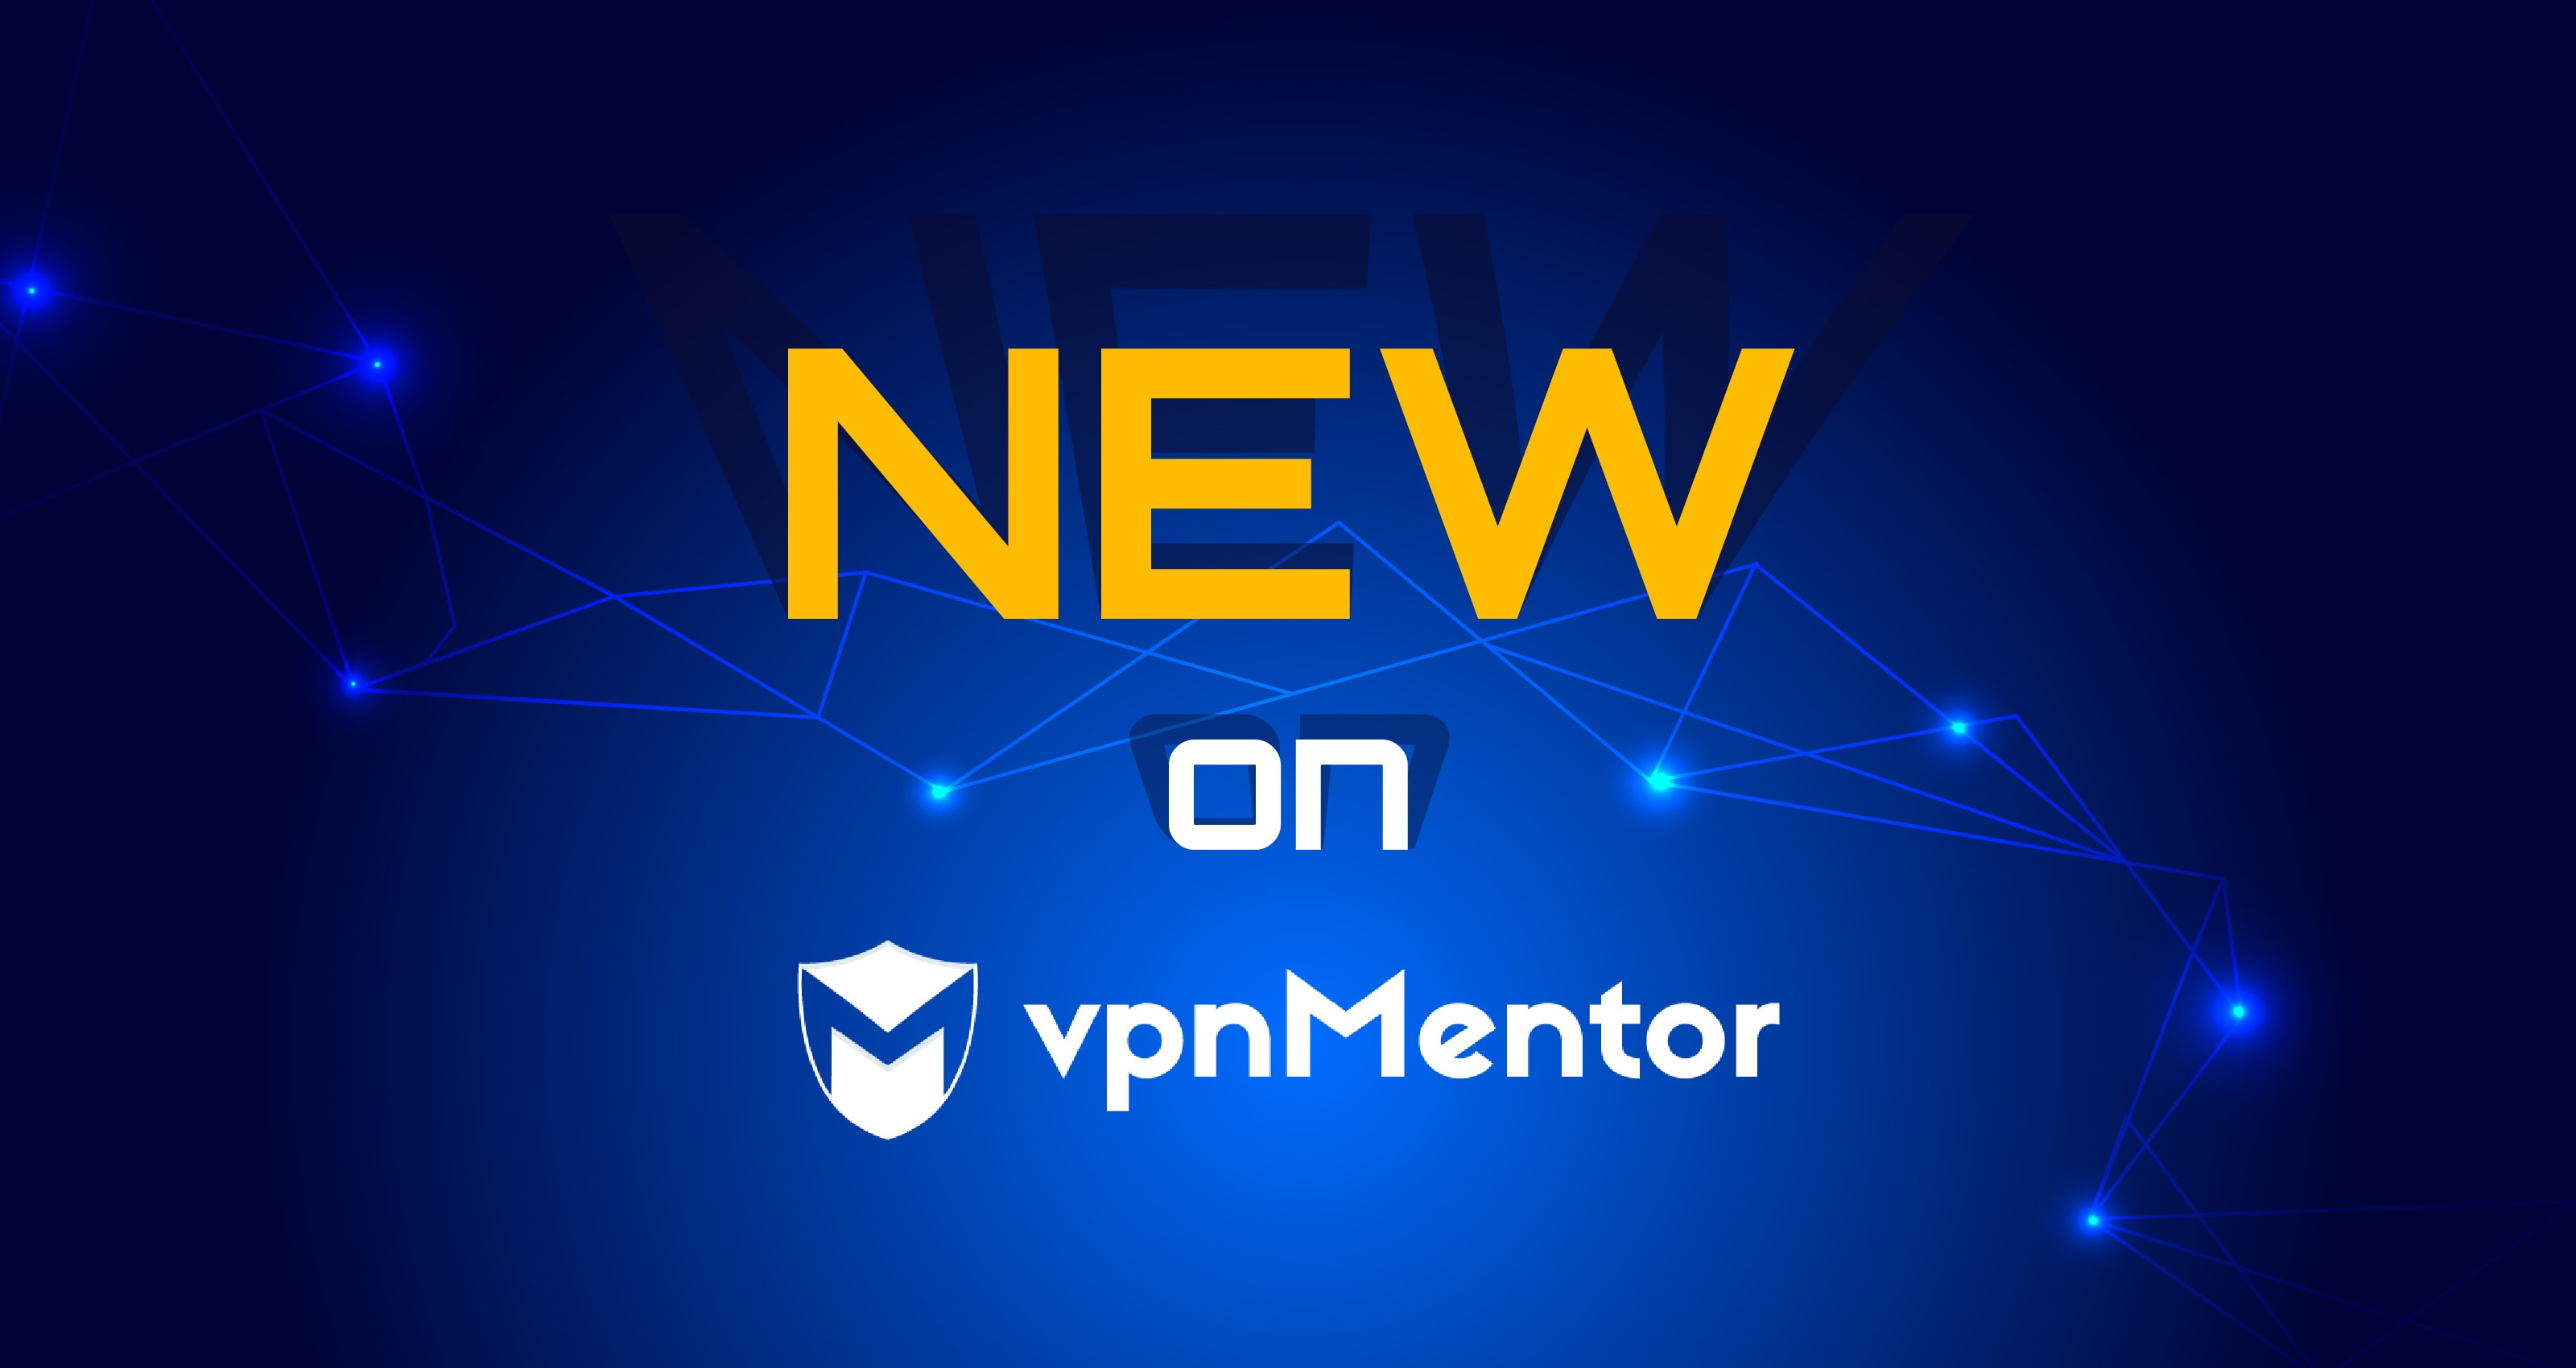 New on vpnMentor